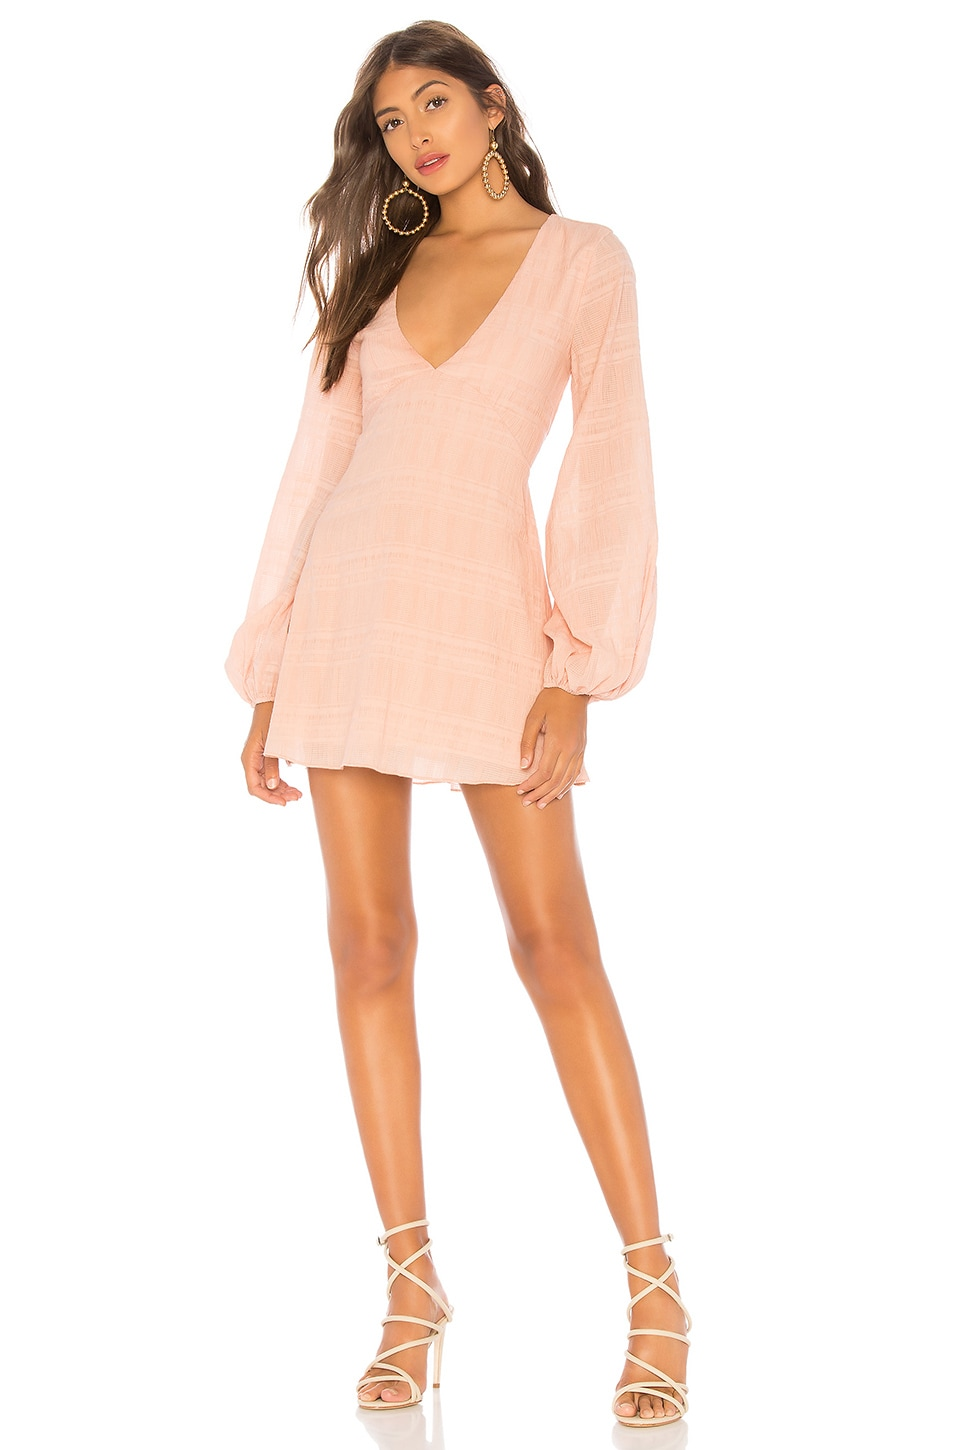 Tularosa Ryland Dress in Blush Pink